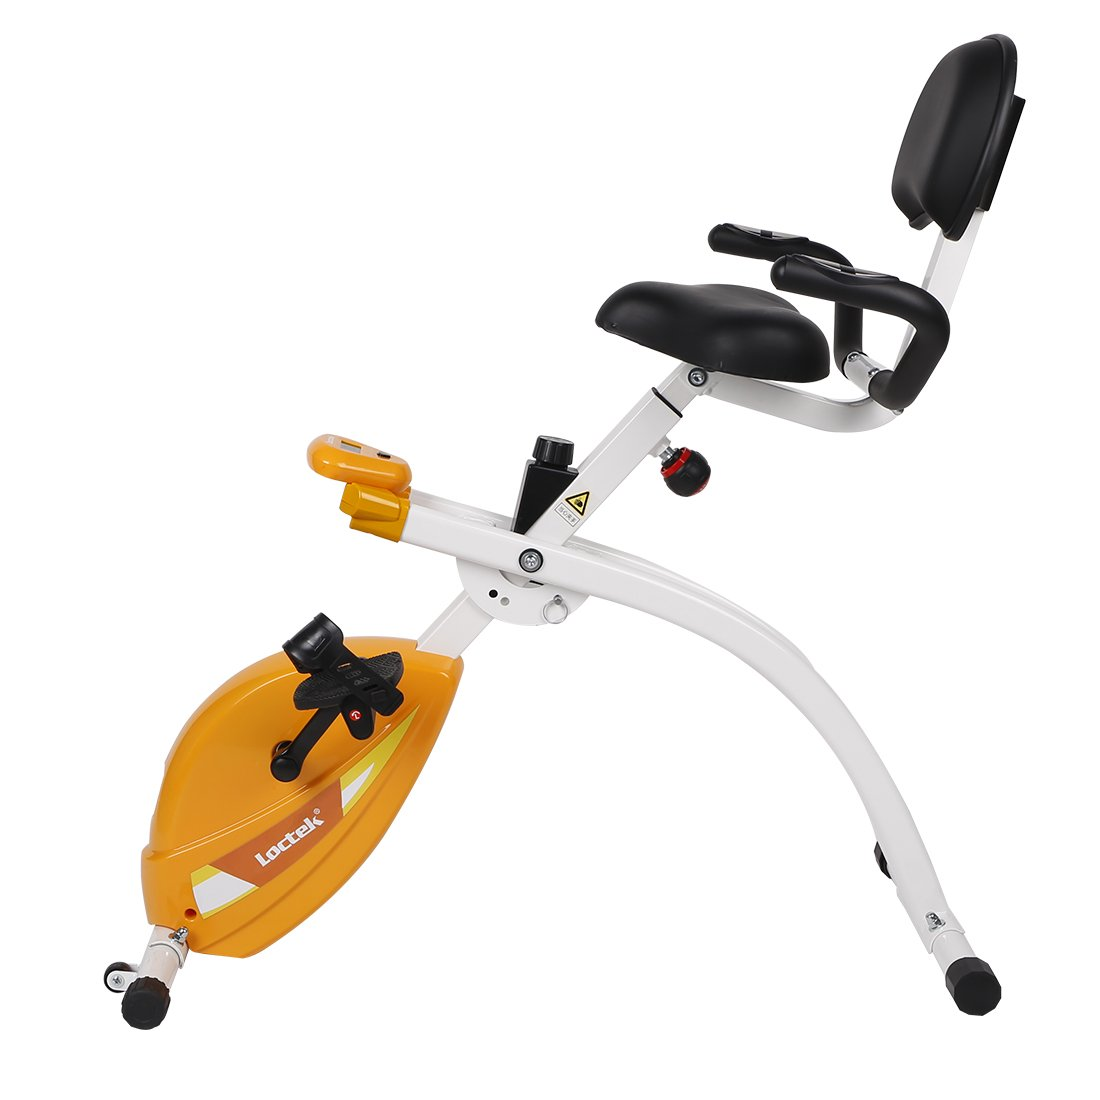 Terrific Loctek U1 Under Desk Bike Upright Stationary Foldable Download Free Architecture Designs Intelgarnamadebymaigaardcom